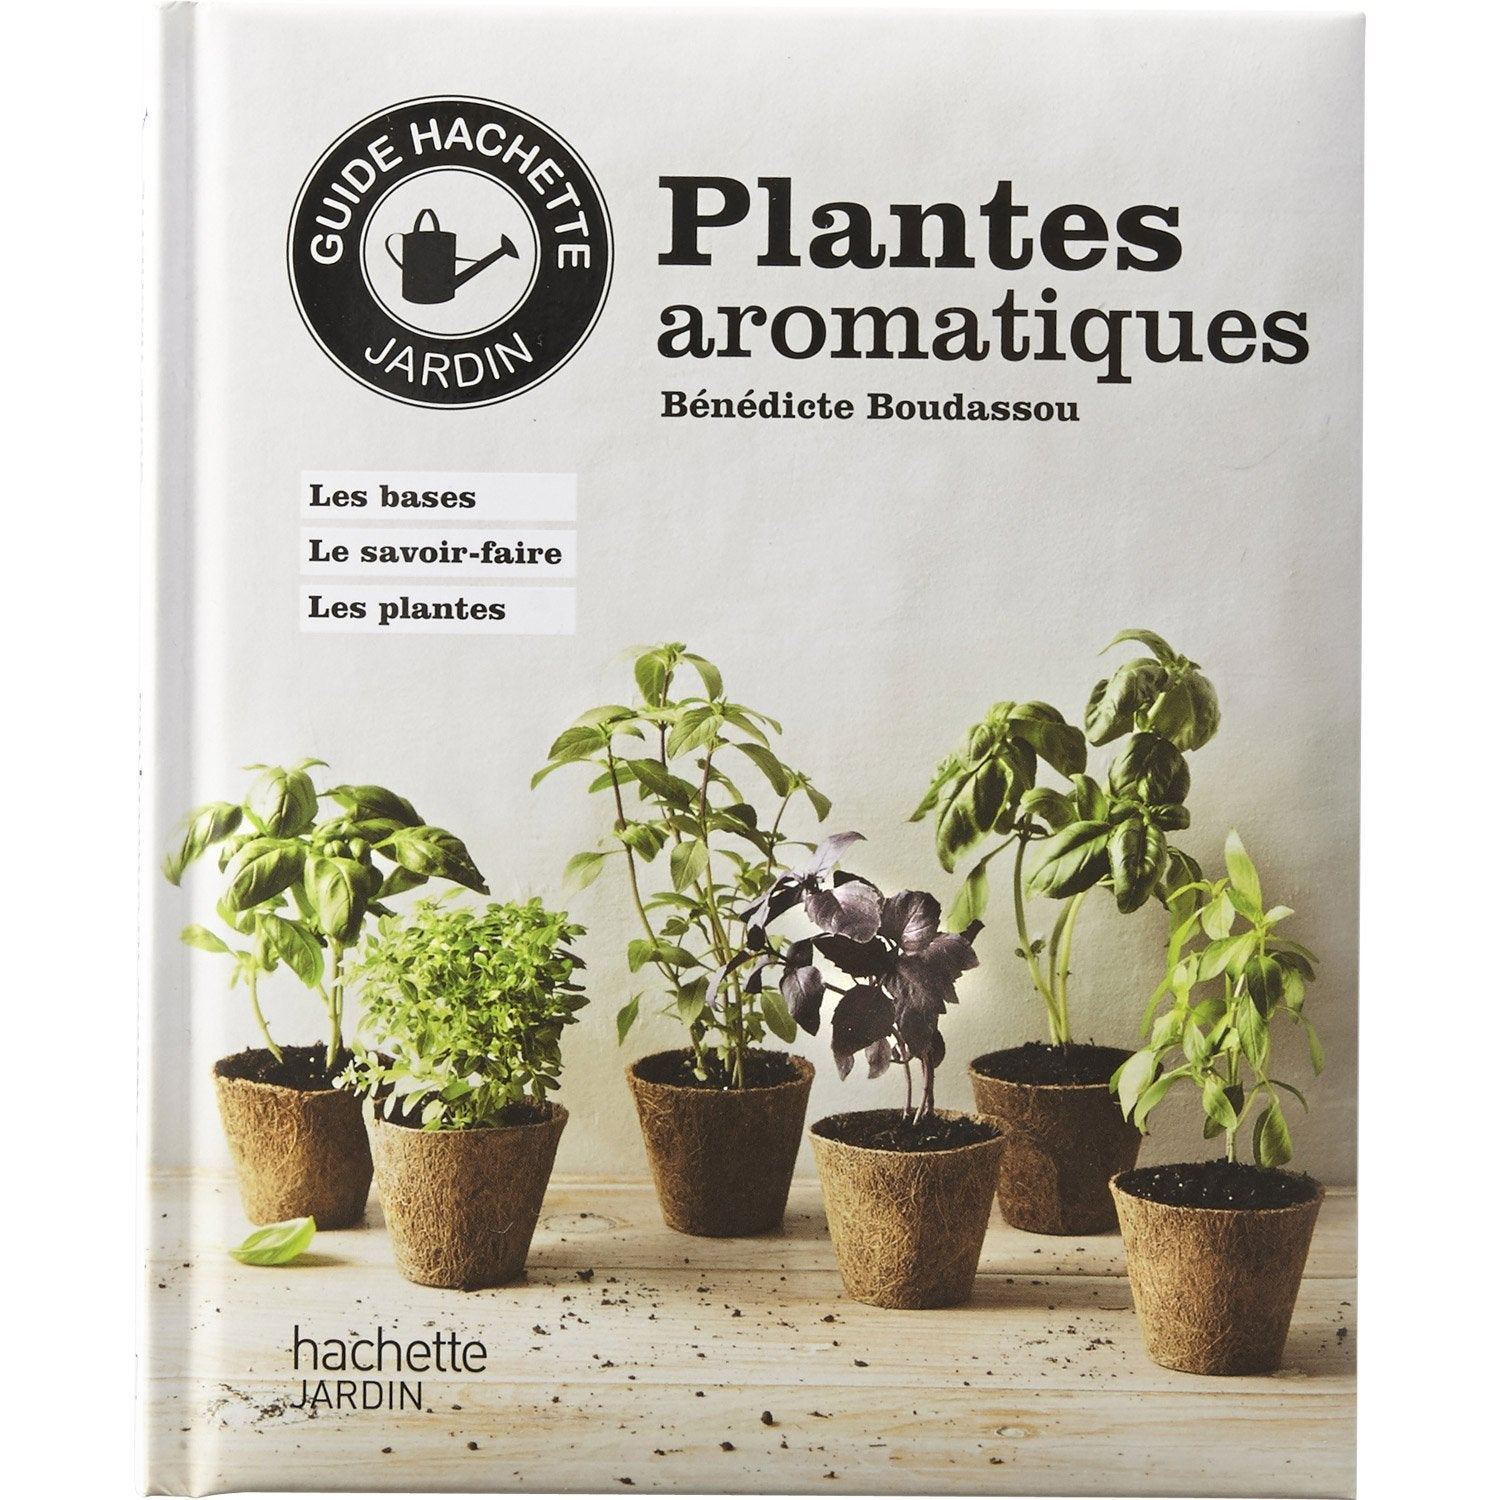 plantes aromatiques hachette leroy merlin. Black Bedroom Furniture Sets. Home Design Ideas